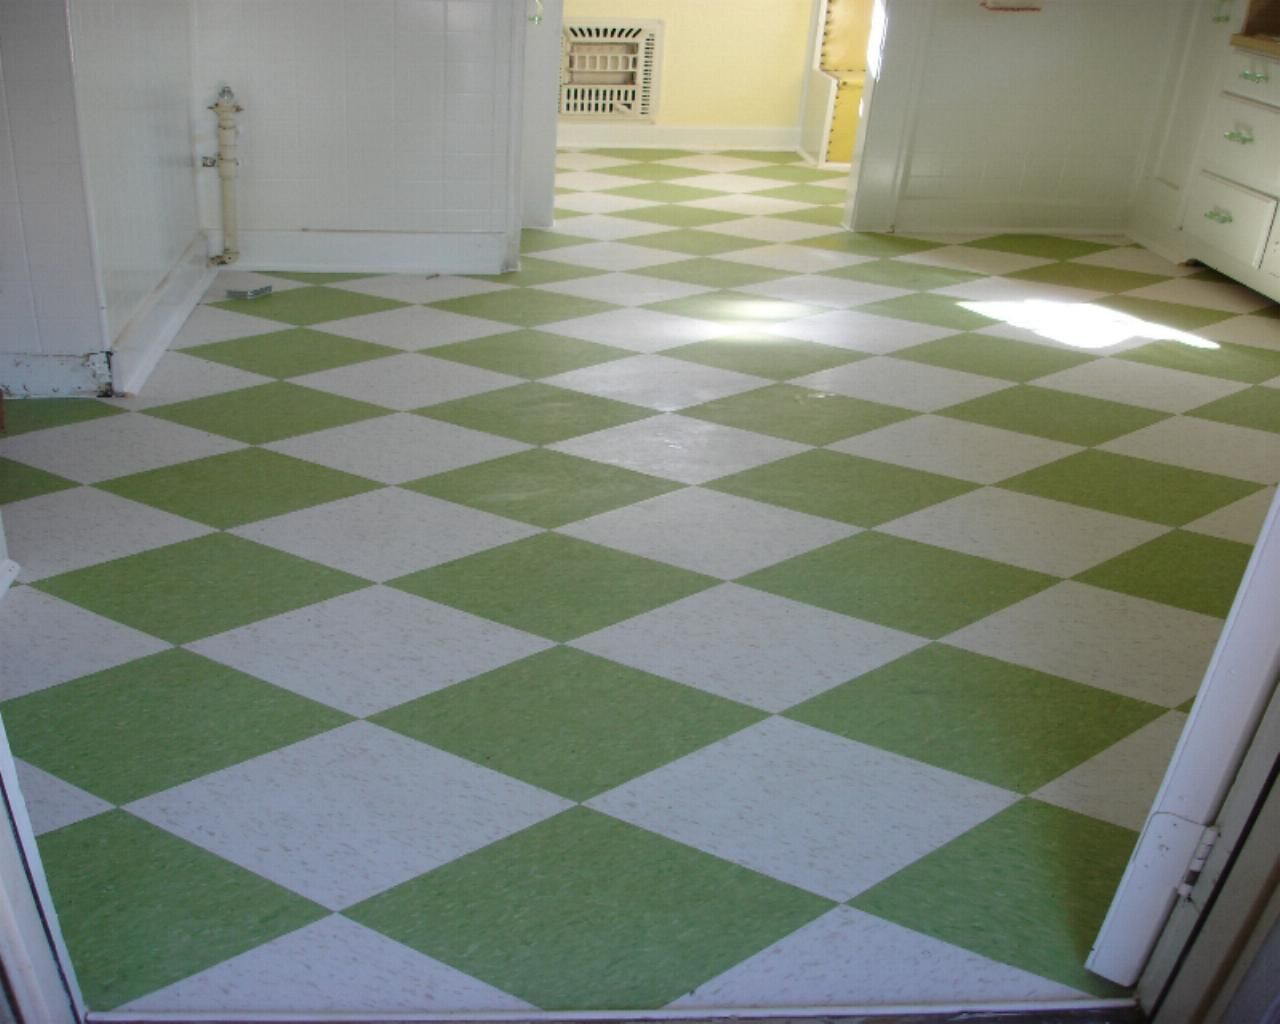 VCT flooring installation in kitchen Contractor